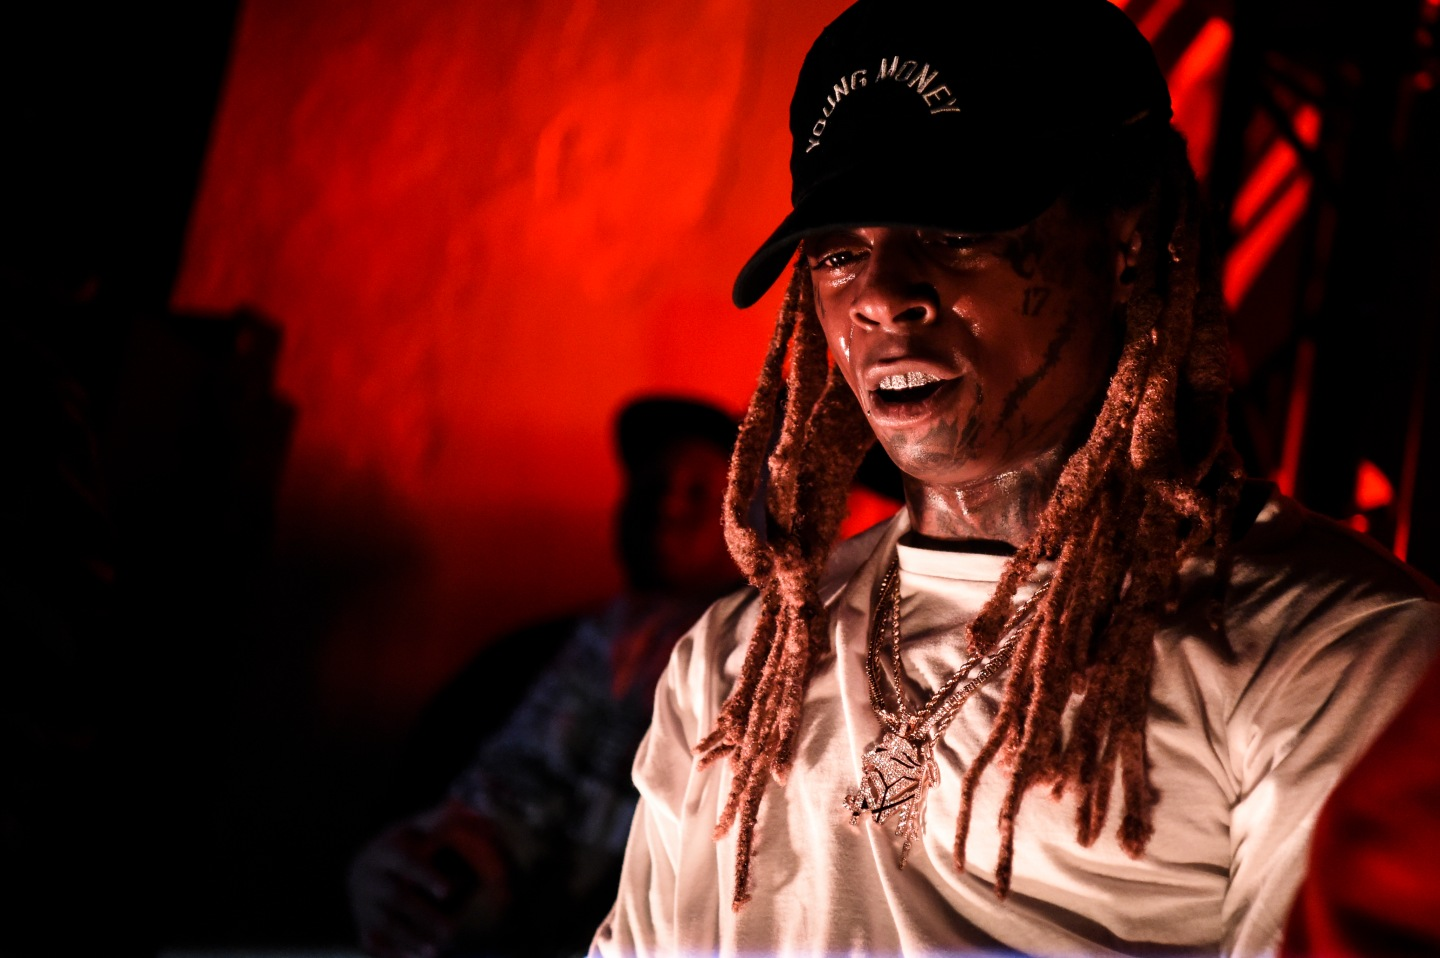 Lil Wayne's Love Letter To New Orleans Presented By The FADER & Beats By Dre